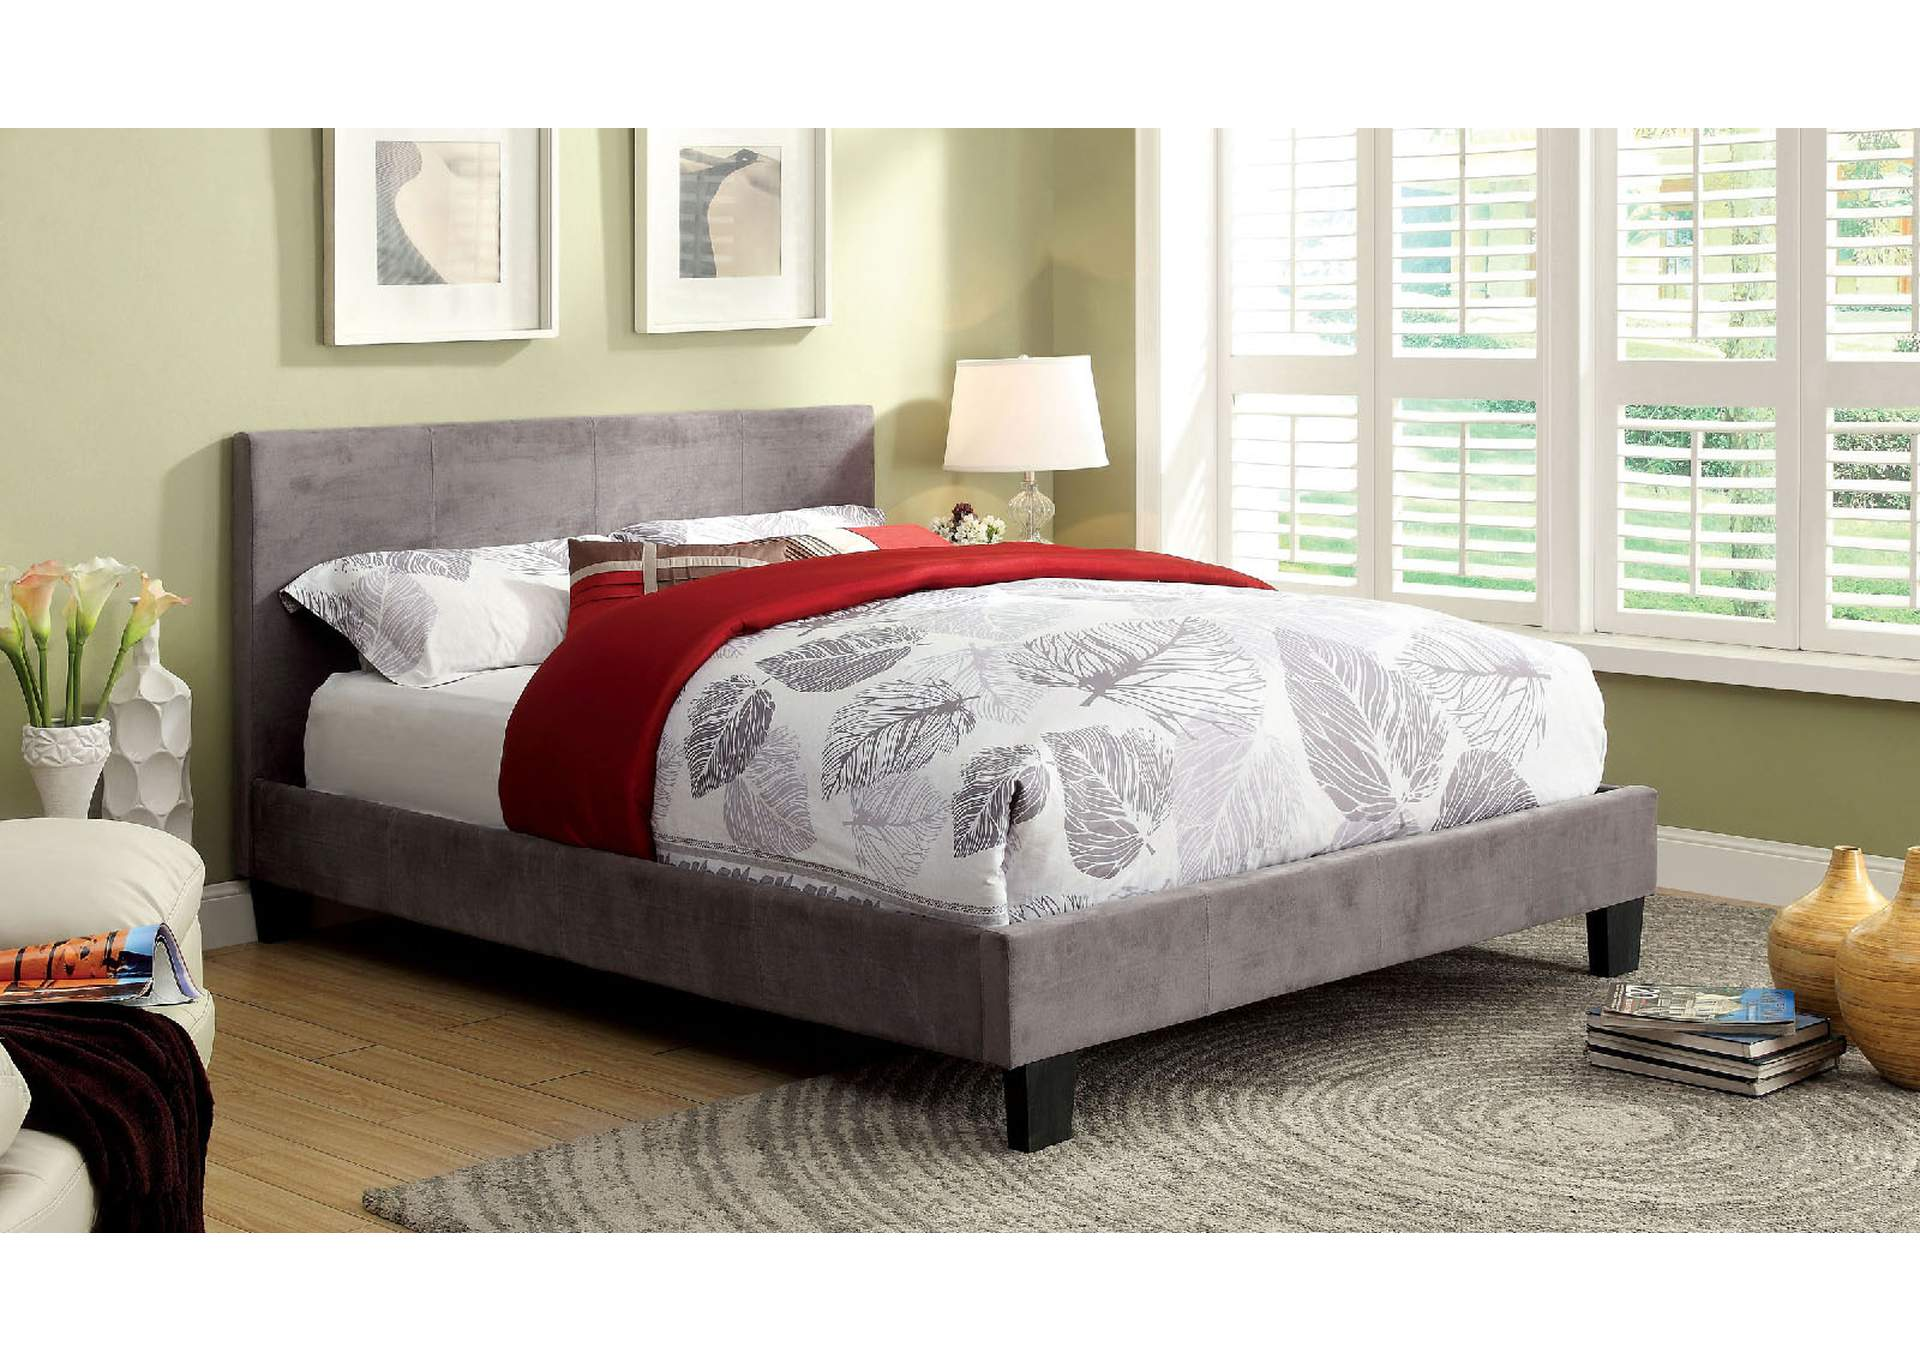 Winn Park Gray Upholstered Twin Platform Bed,Furniture of America